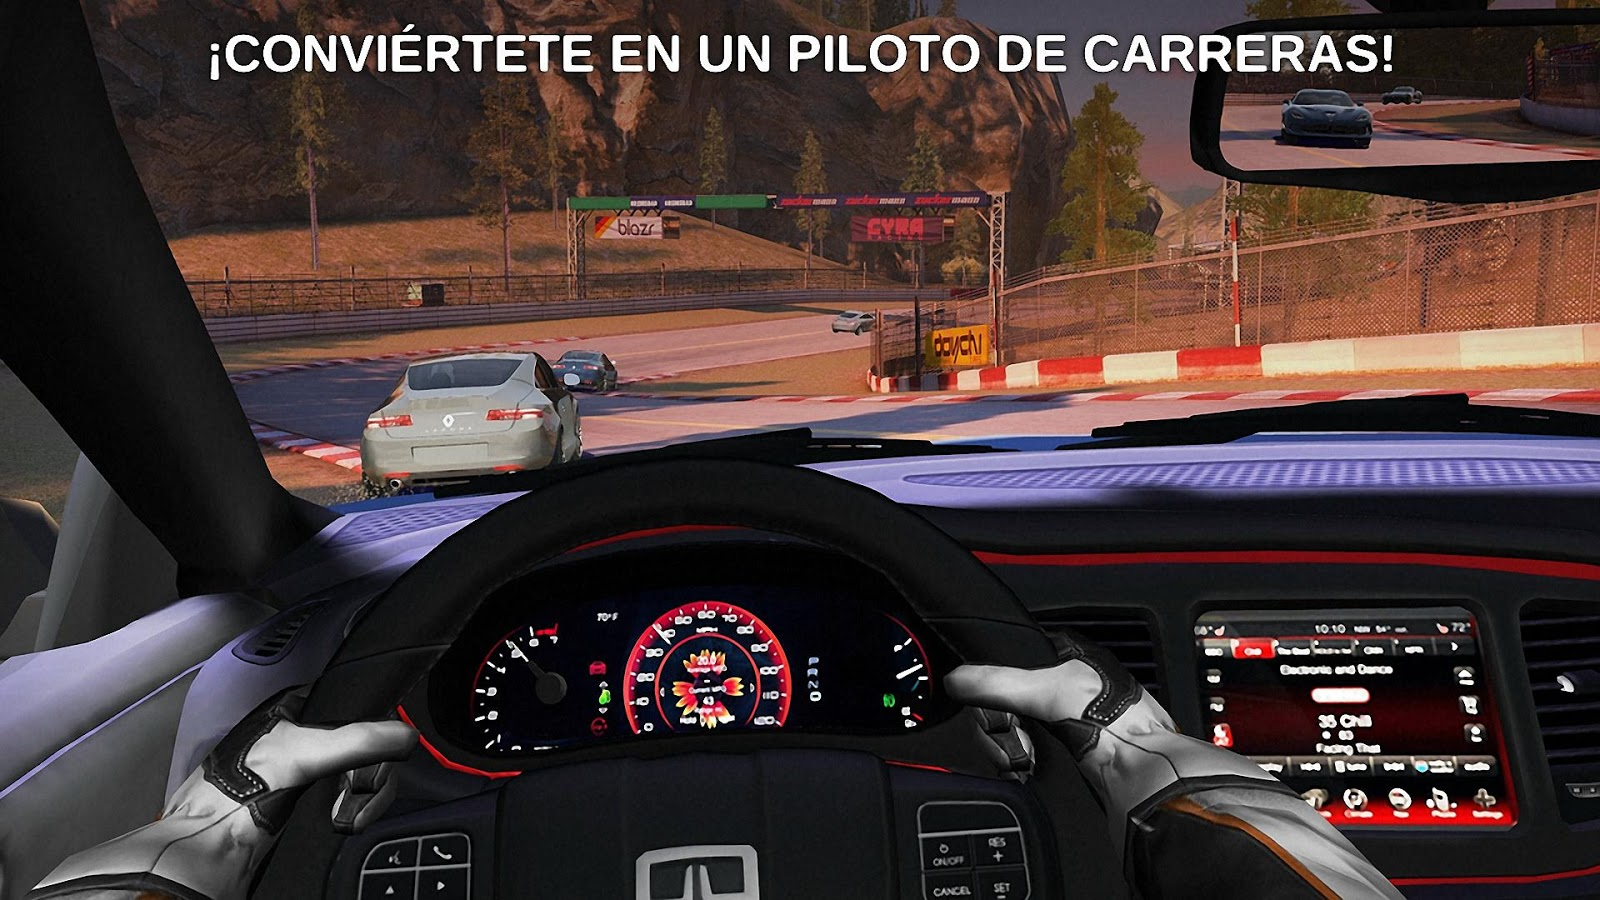 Descargar-nuevo-GT-Racing-The-Real-Car-Experience-gratis-en-Android1